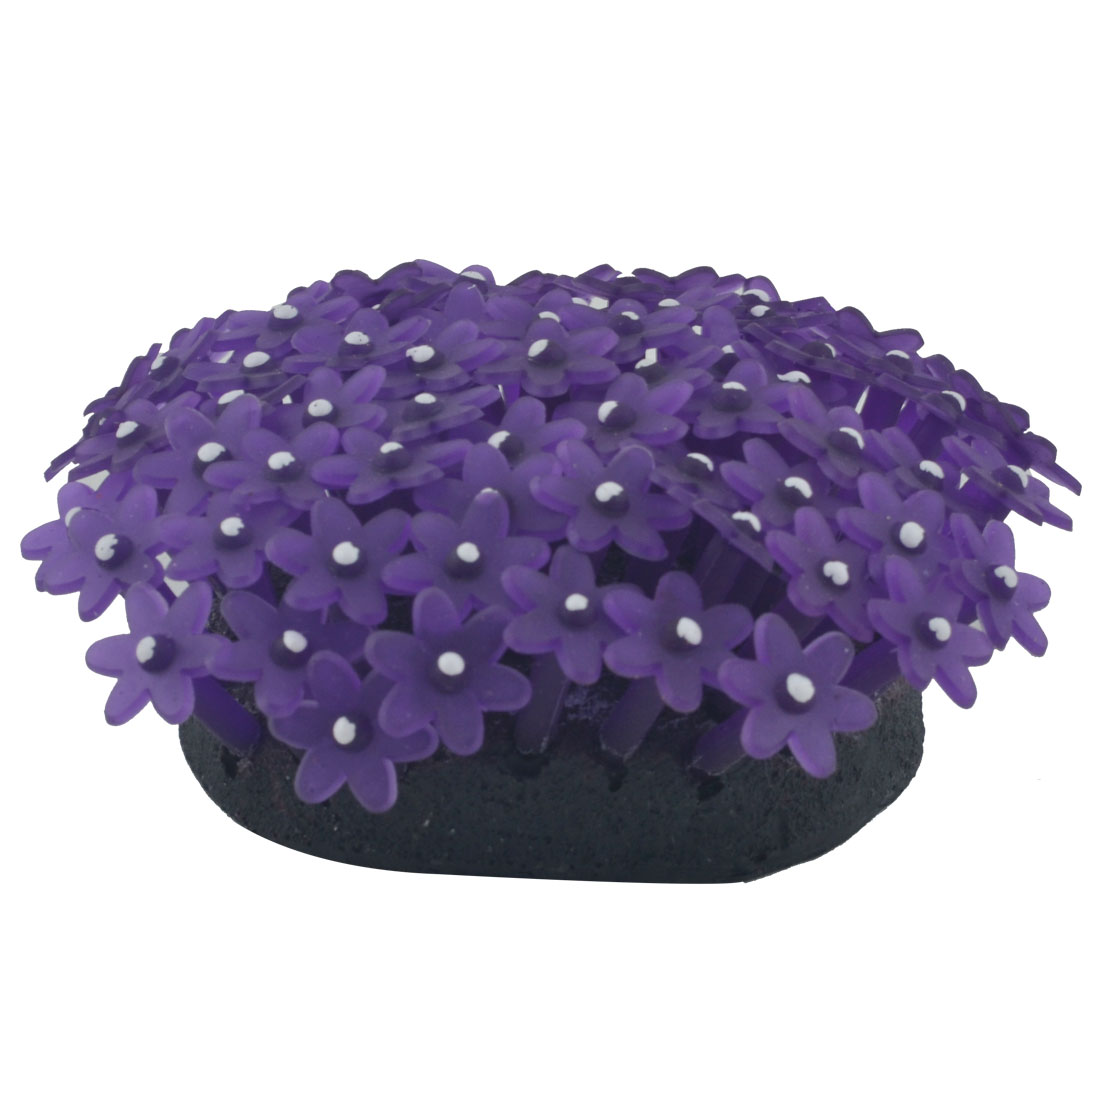 Fish Tank Aquarium Fishbowl Silicone Emulational Coral Grass Plant Decor Ornament Purple